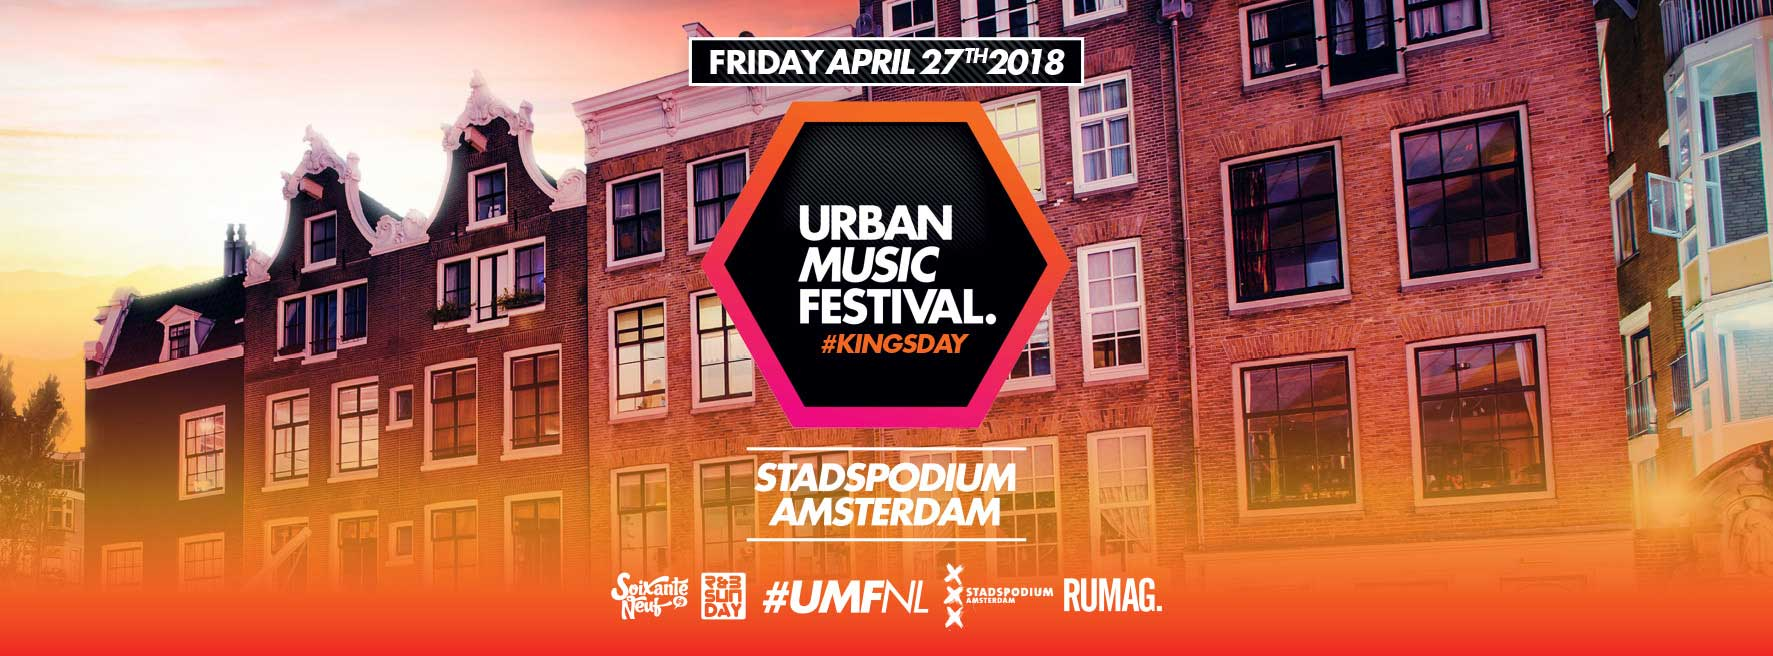 Urban Music Festival Kingsday | Stadspodium Amsterdam